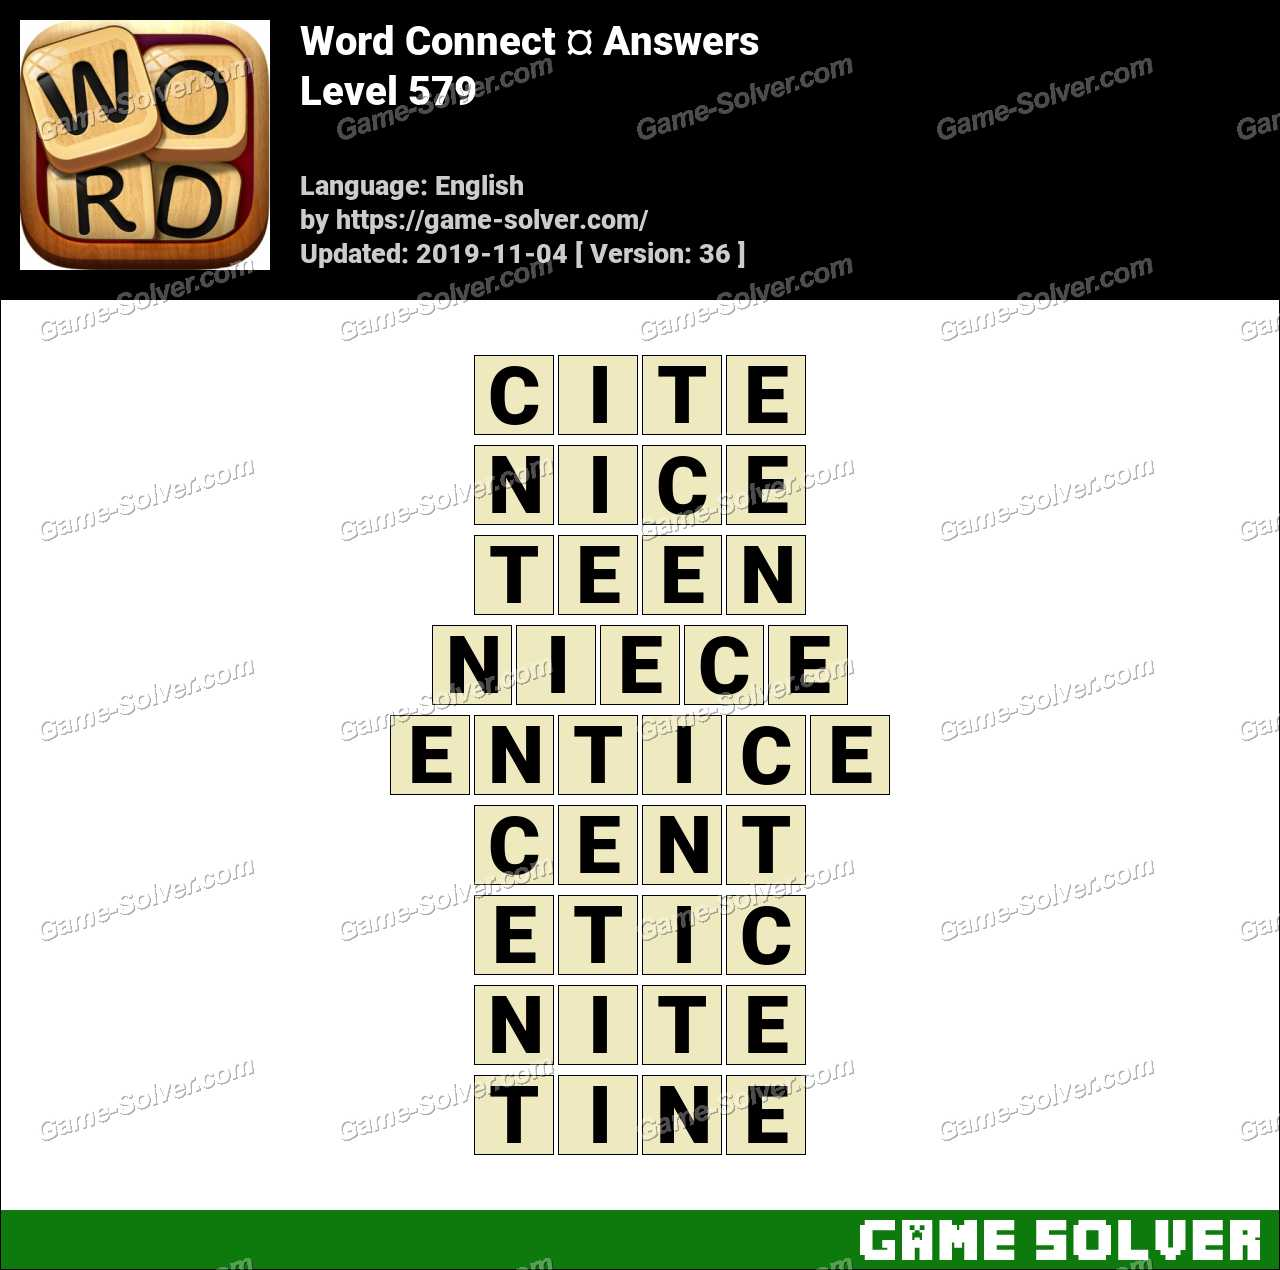 Word Connect Level 579 Answers